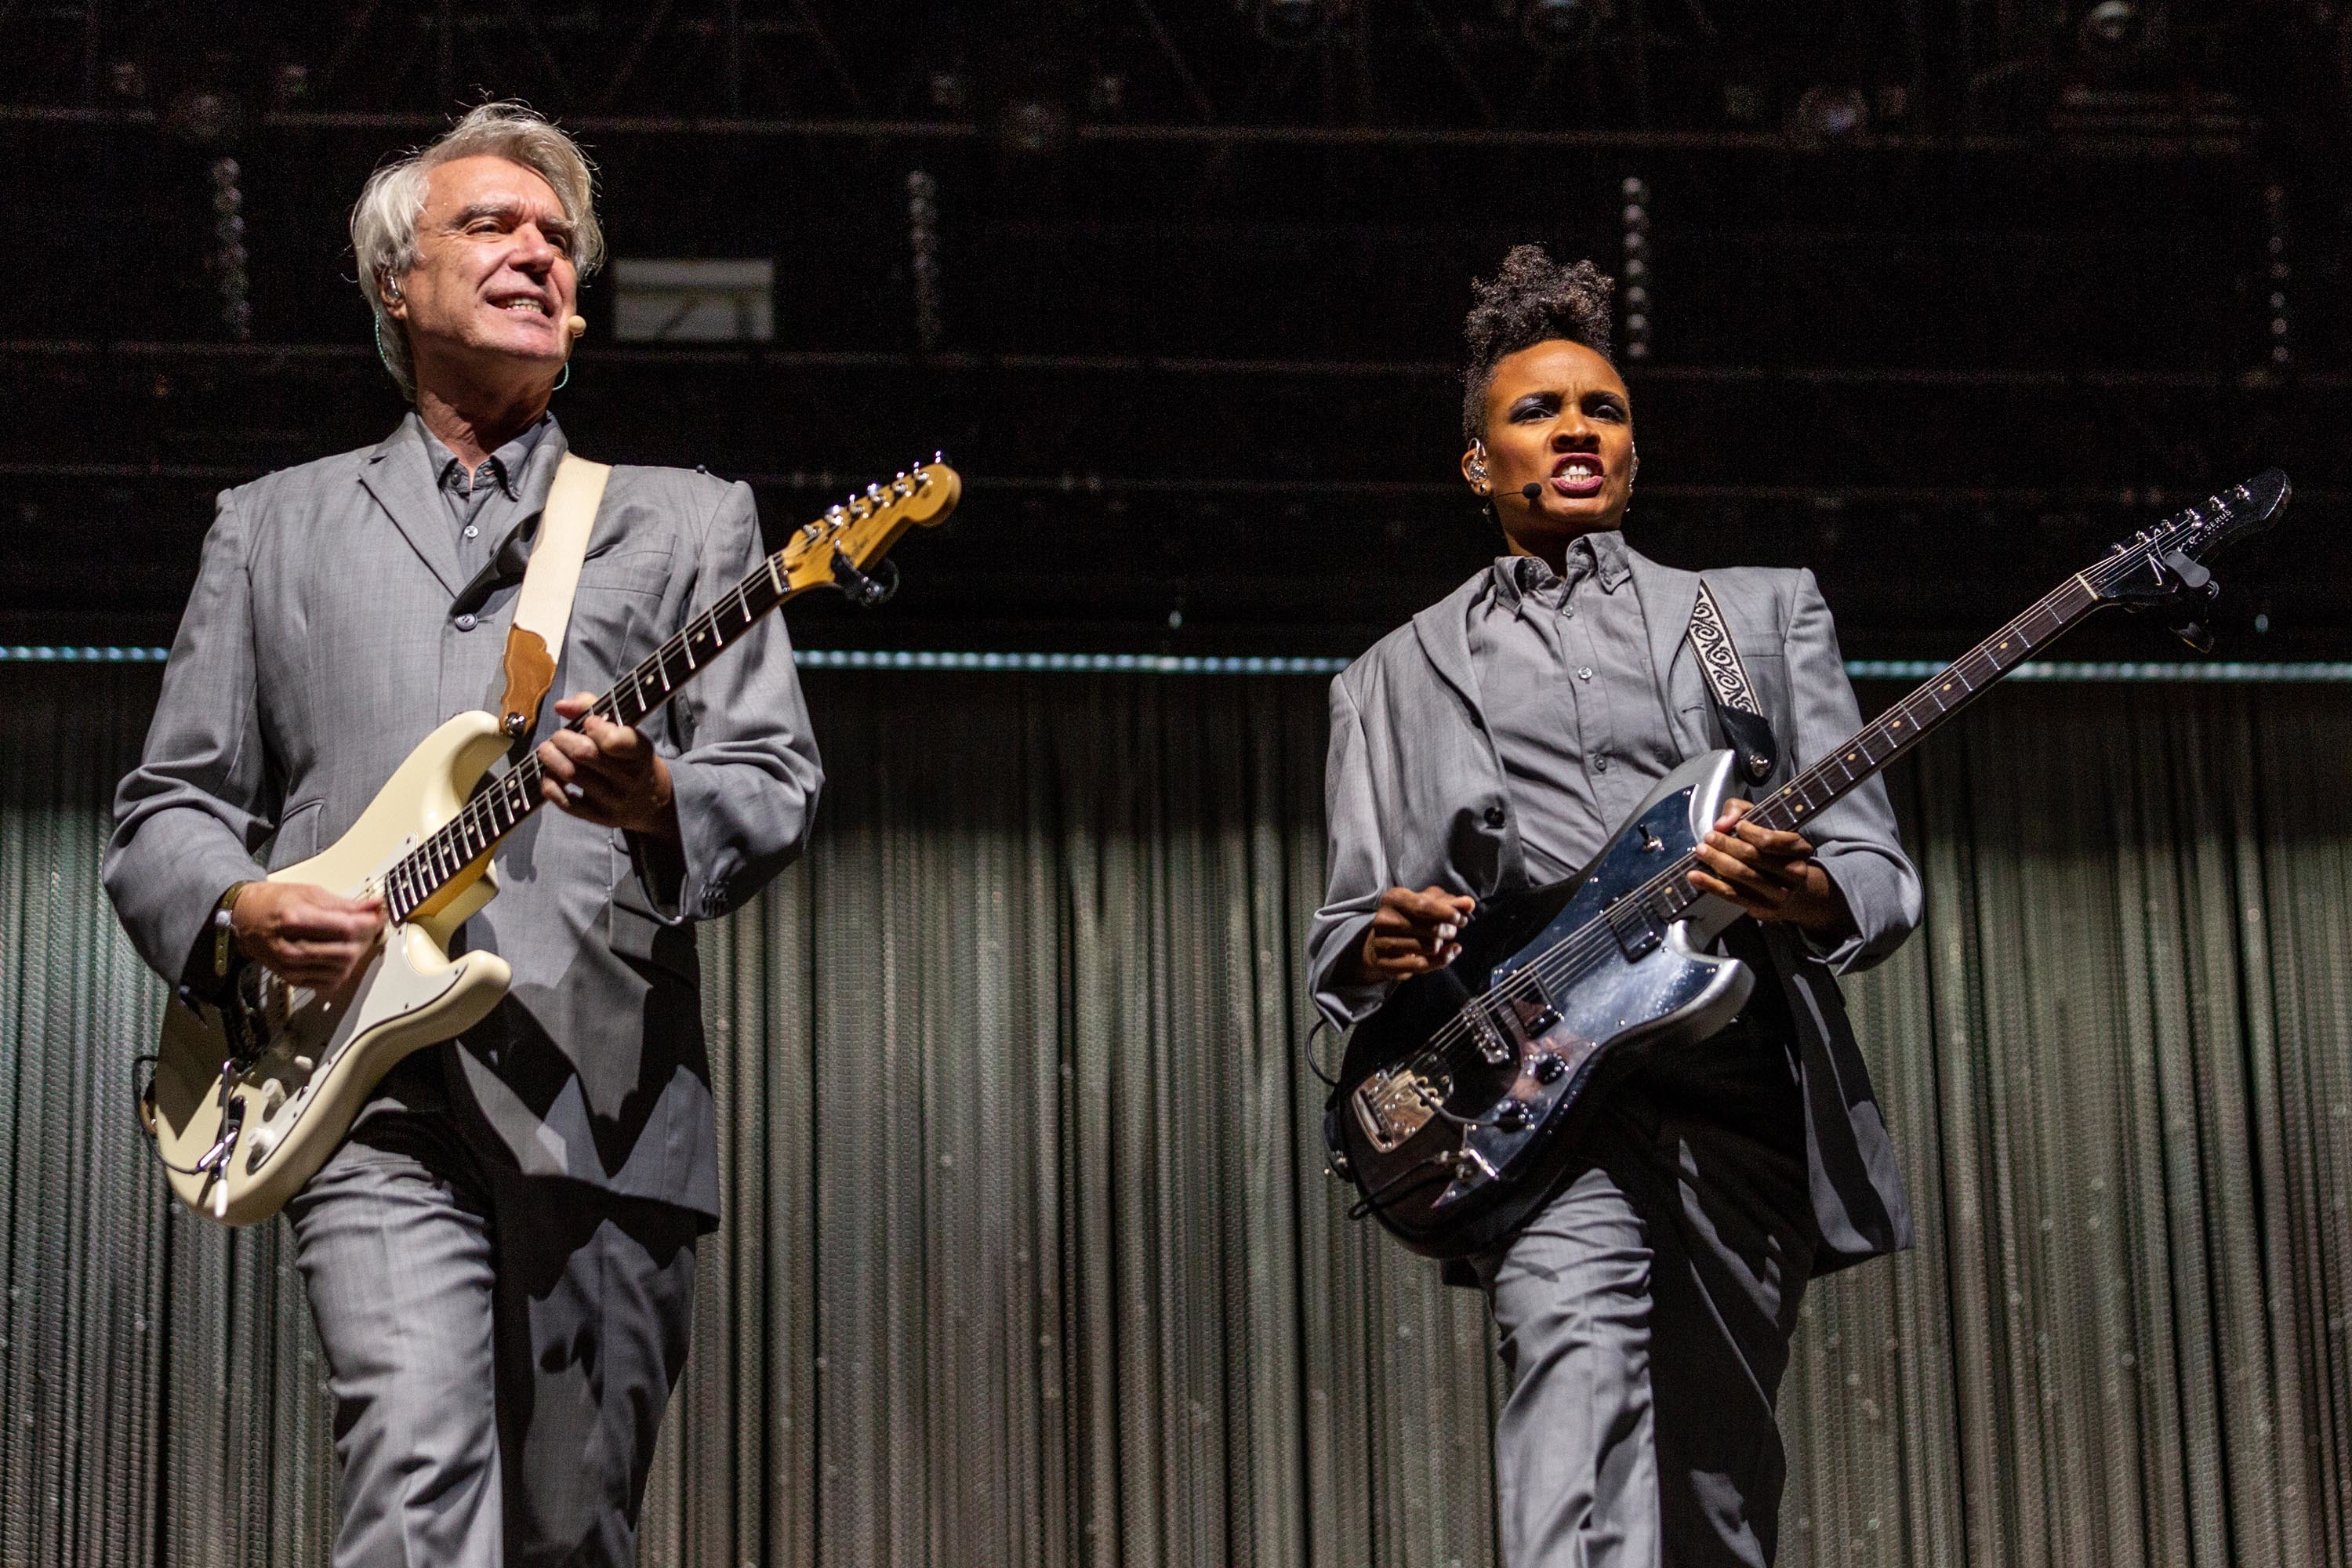 David Byrne, Depeche Mode and Young Fathers lead an eclectic day two at Open'er 2018